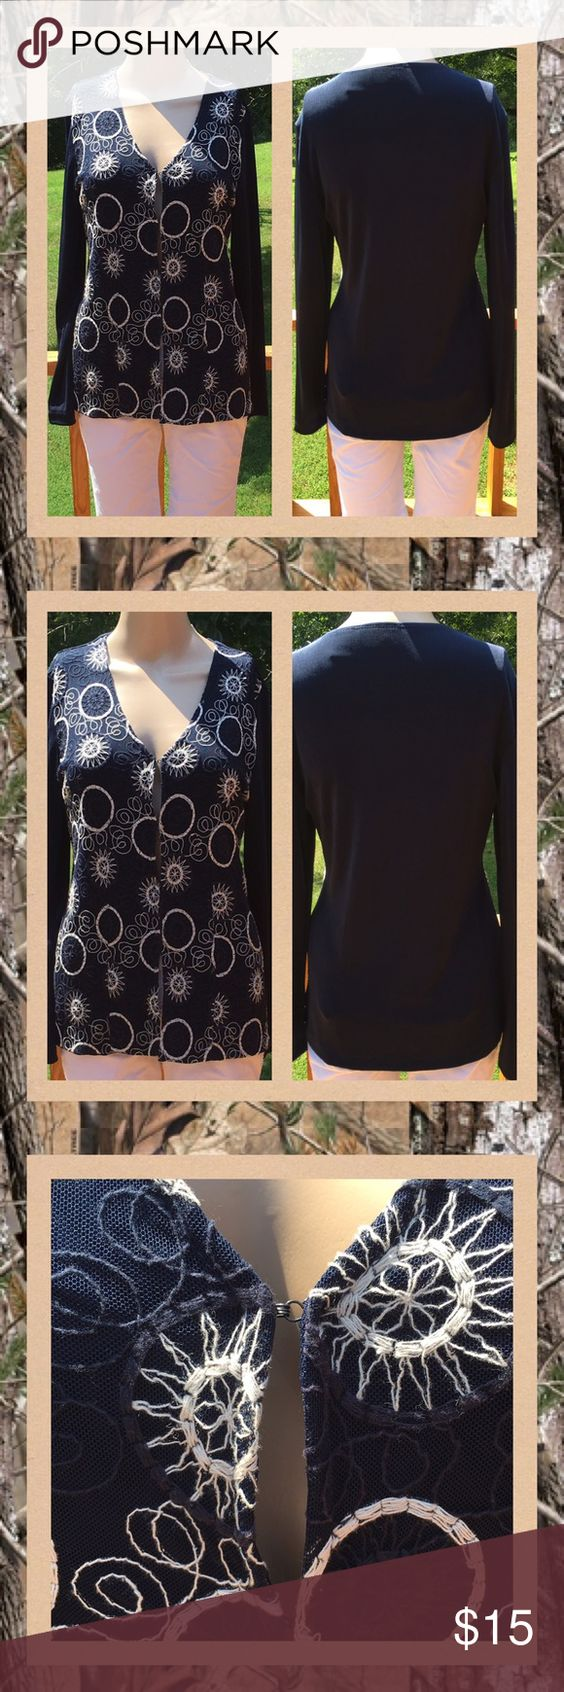 Chico's Long Sleeve Blouse Chico's long sleeve blouse, tagged size 0, which is a size small or size 4.  Navy blue with white and navy blue string designs all over blouse with hook and eye closures. Great condition and very unique. Smoke free home. Chico's Tops Blouses